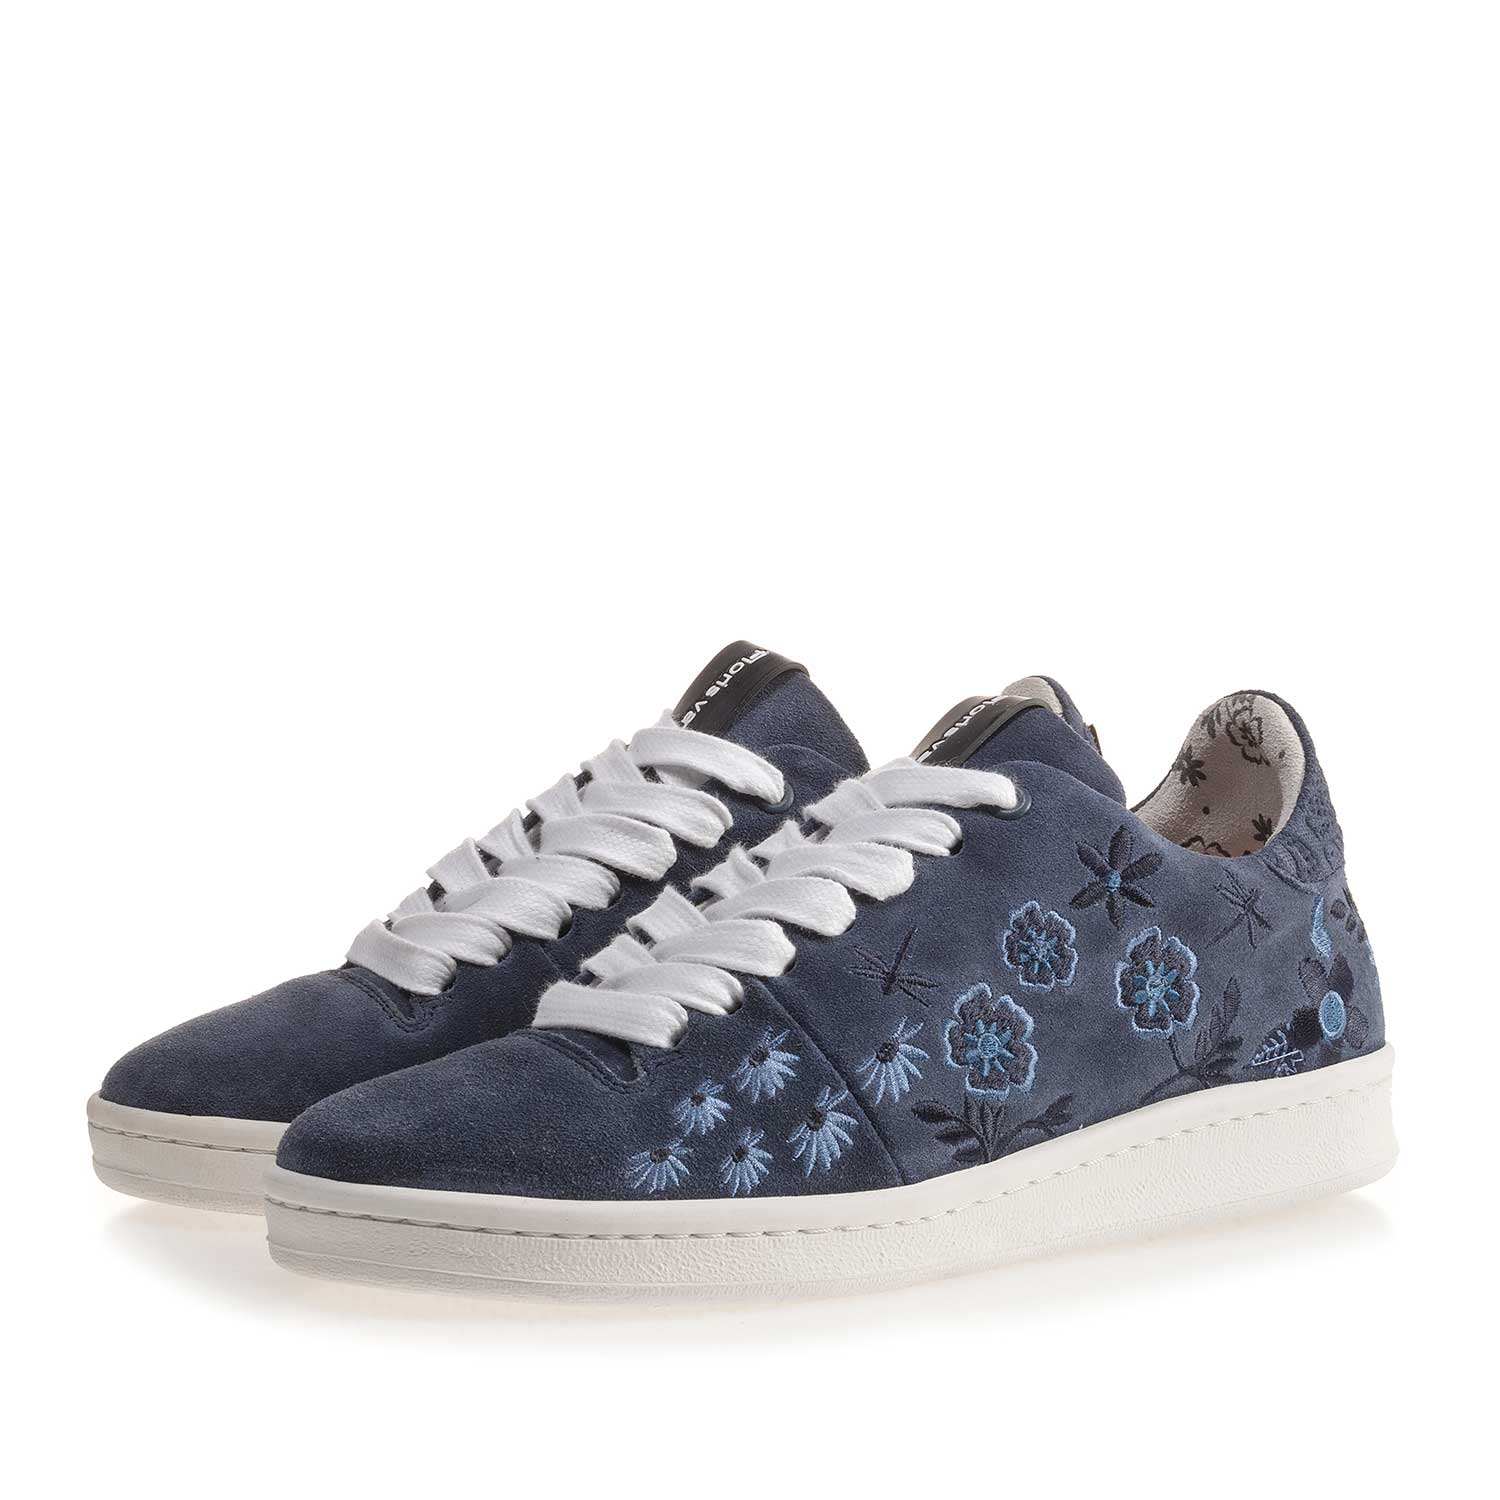 85235/00 - Dark blue suede leather sneaker with floral embroidery stitching